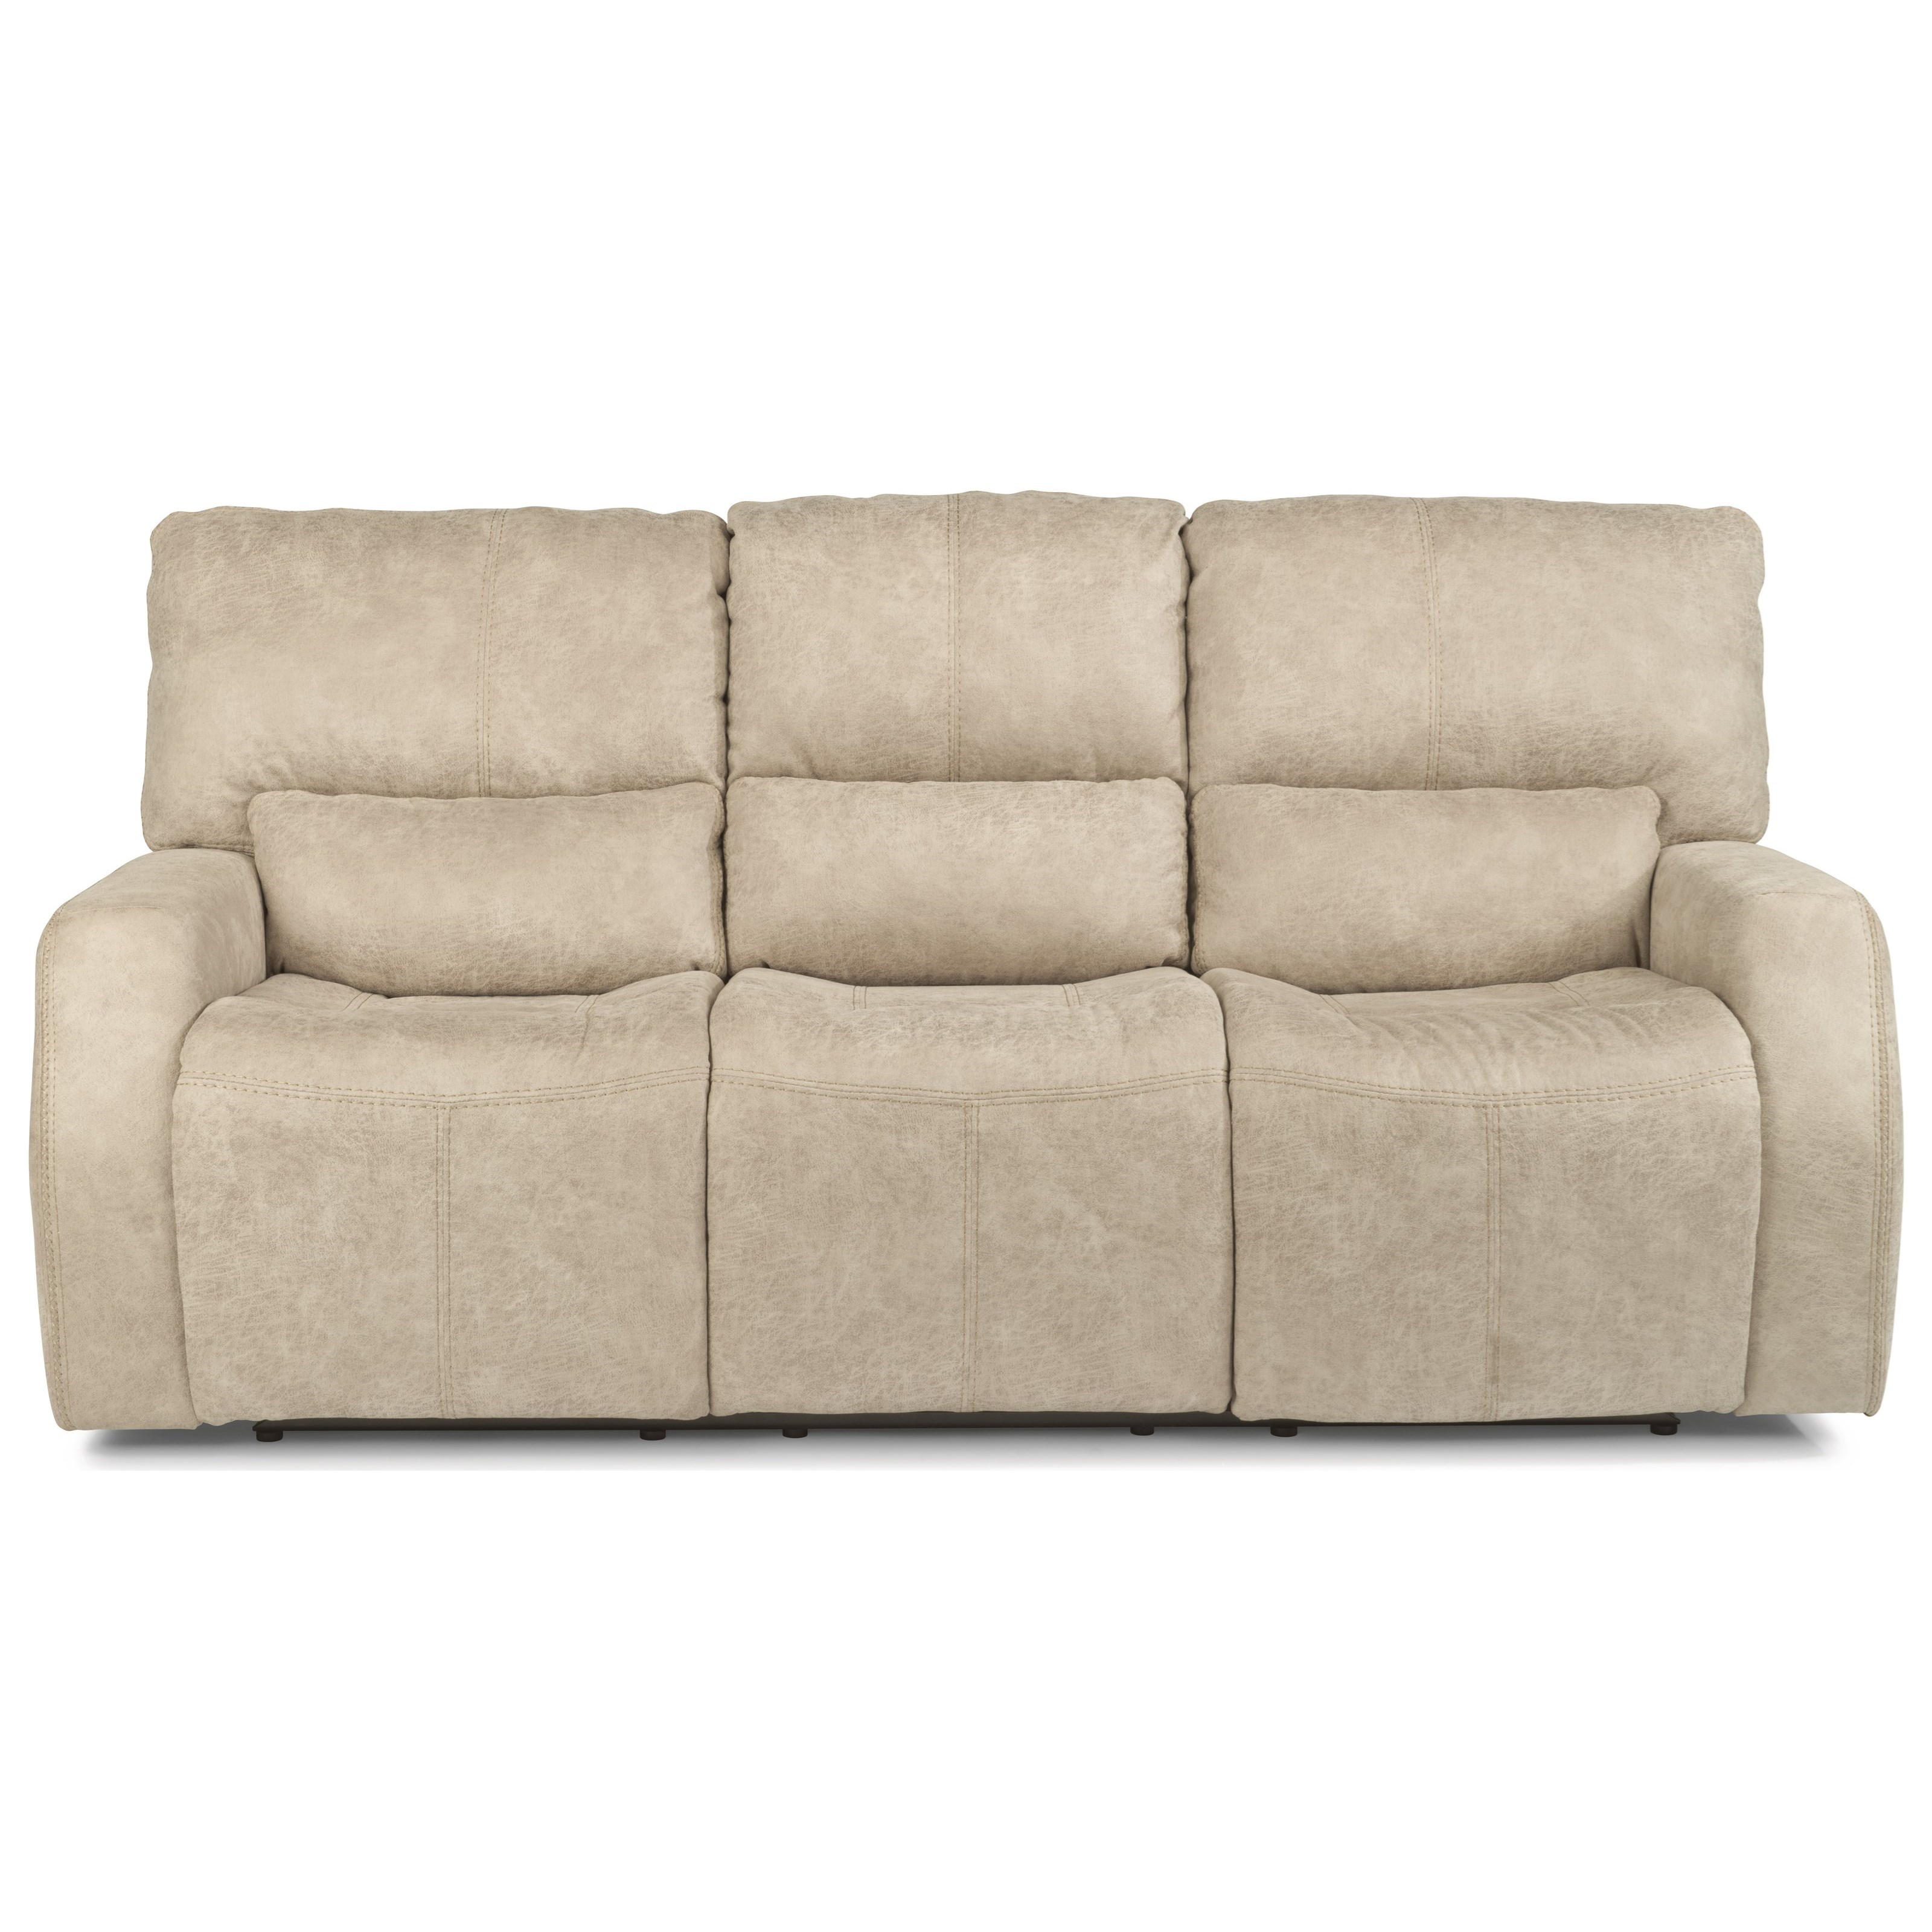 Flexsteel Sofa Locations: Cooper Contemporary Power Reclining